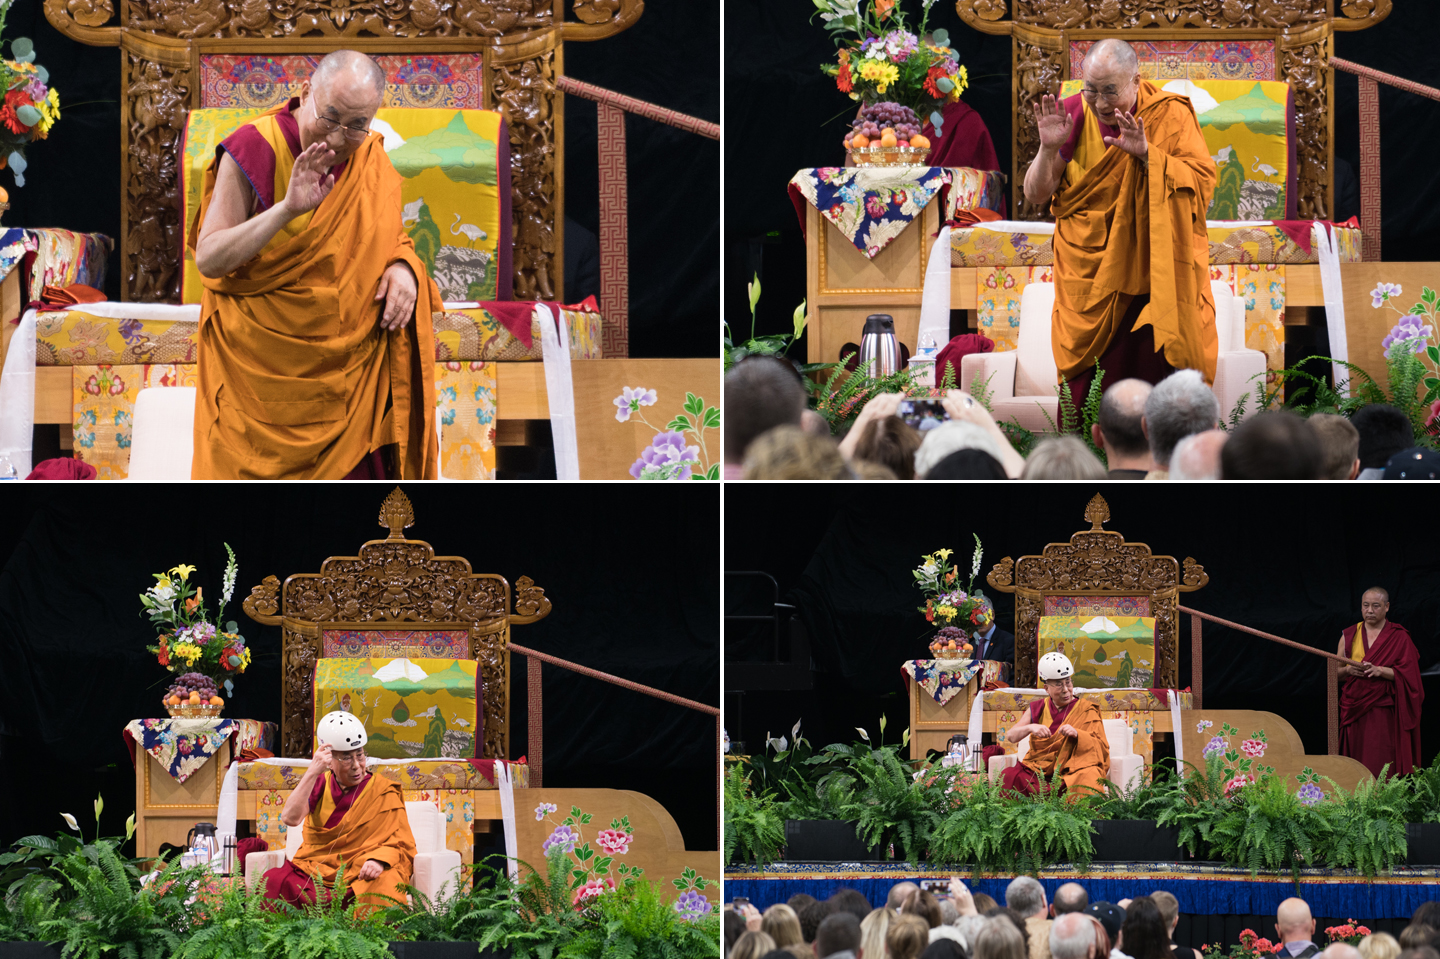 His Holiness the 14th Dalai Lama visits the University of Colorado in Boulder, Colorado